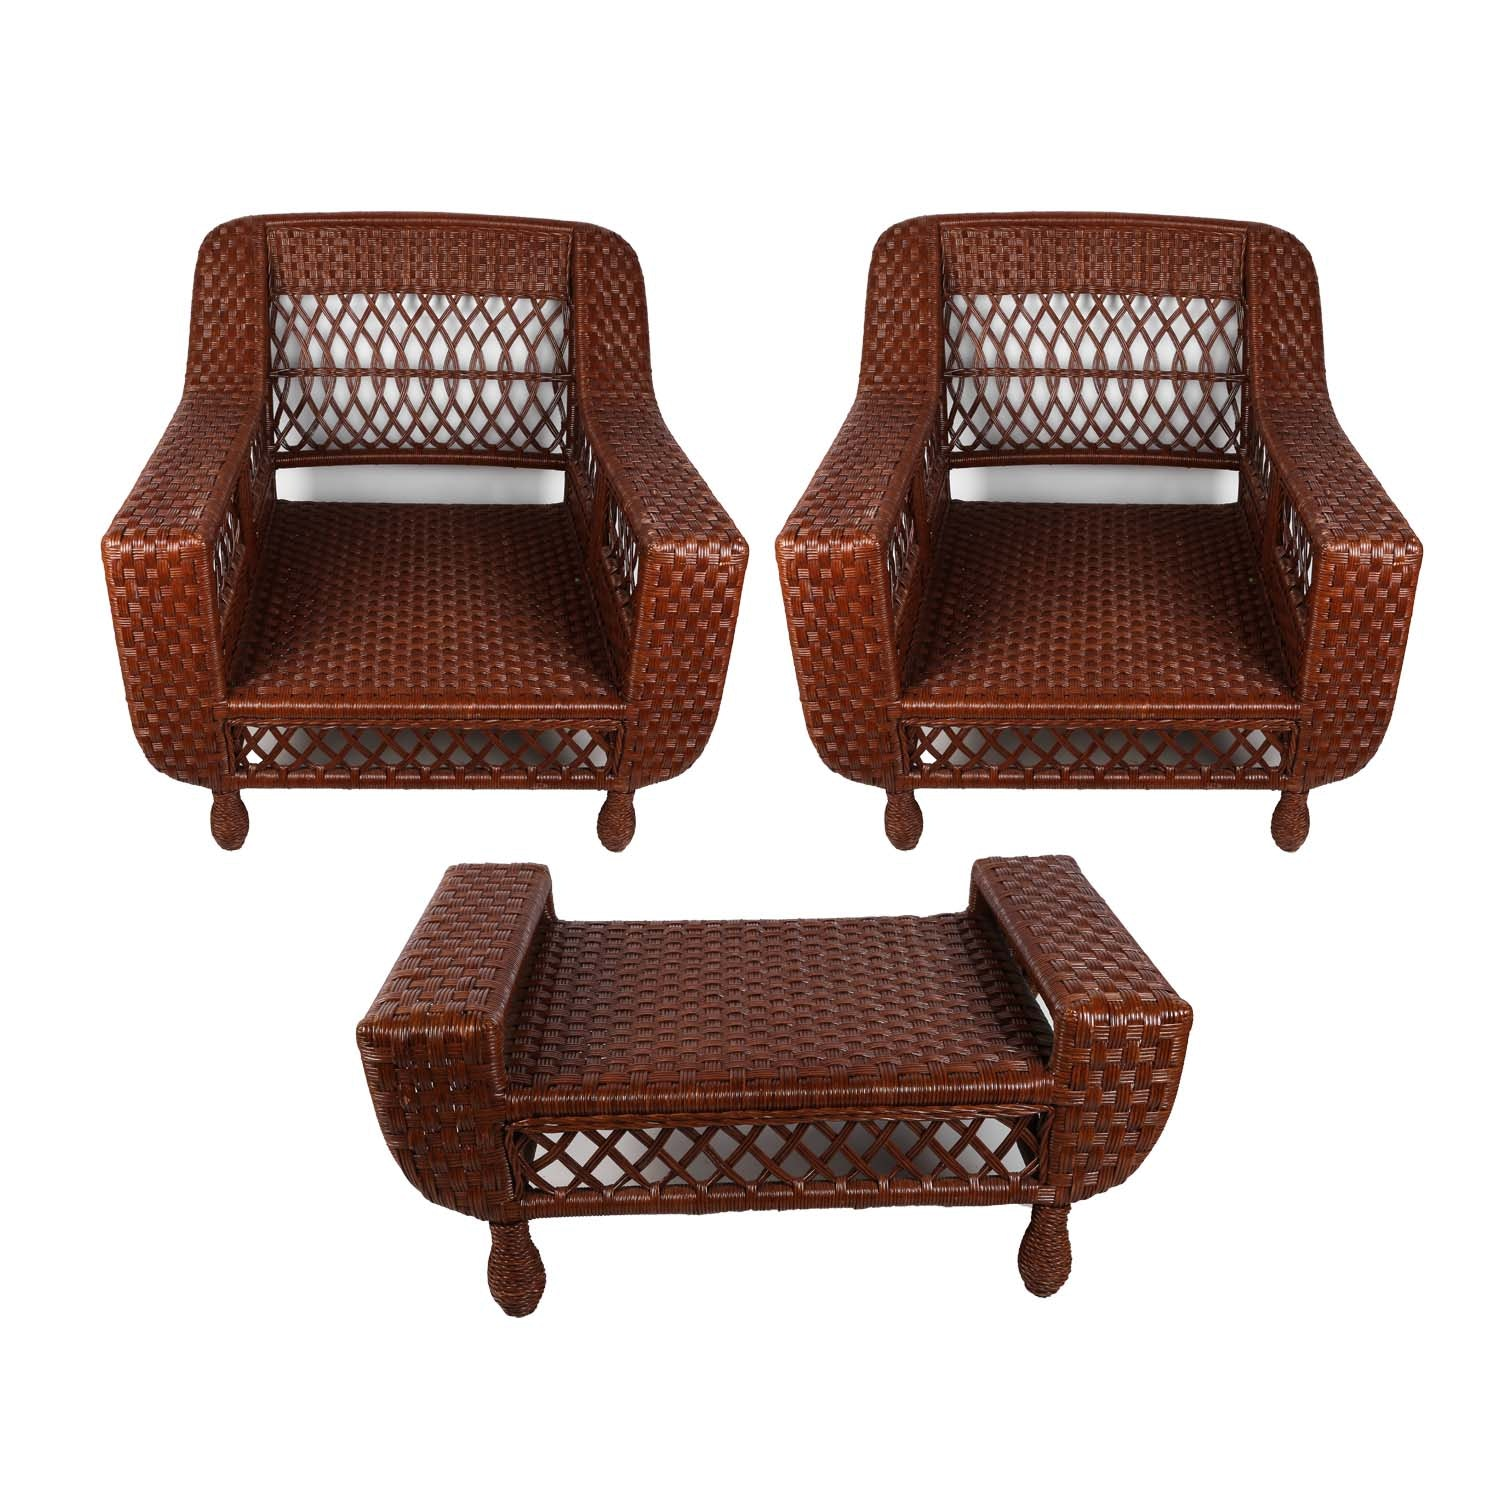 Woven Rattan Club Chairs and Ottoman